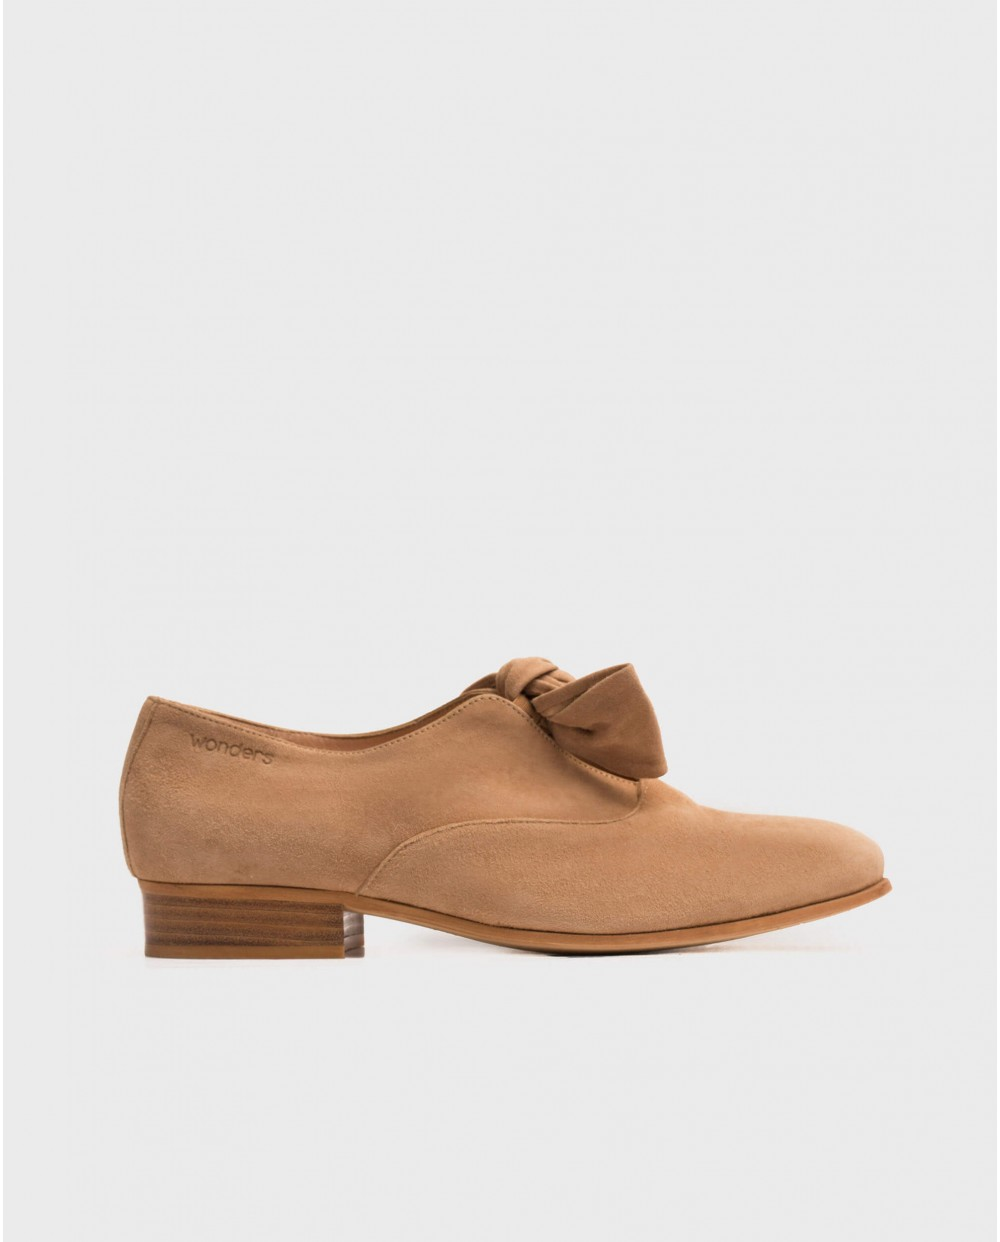 Wonders-Heels-Masculine shoe with bow